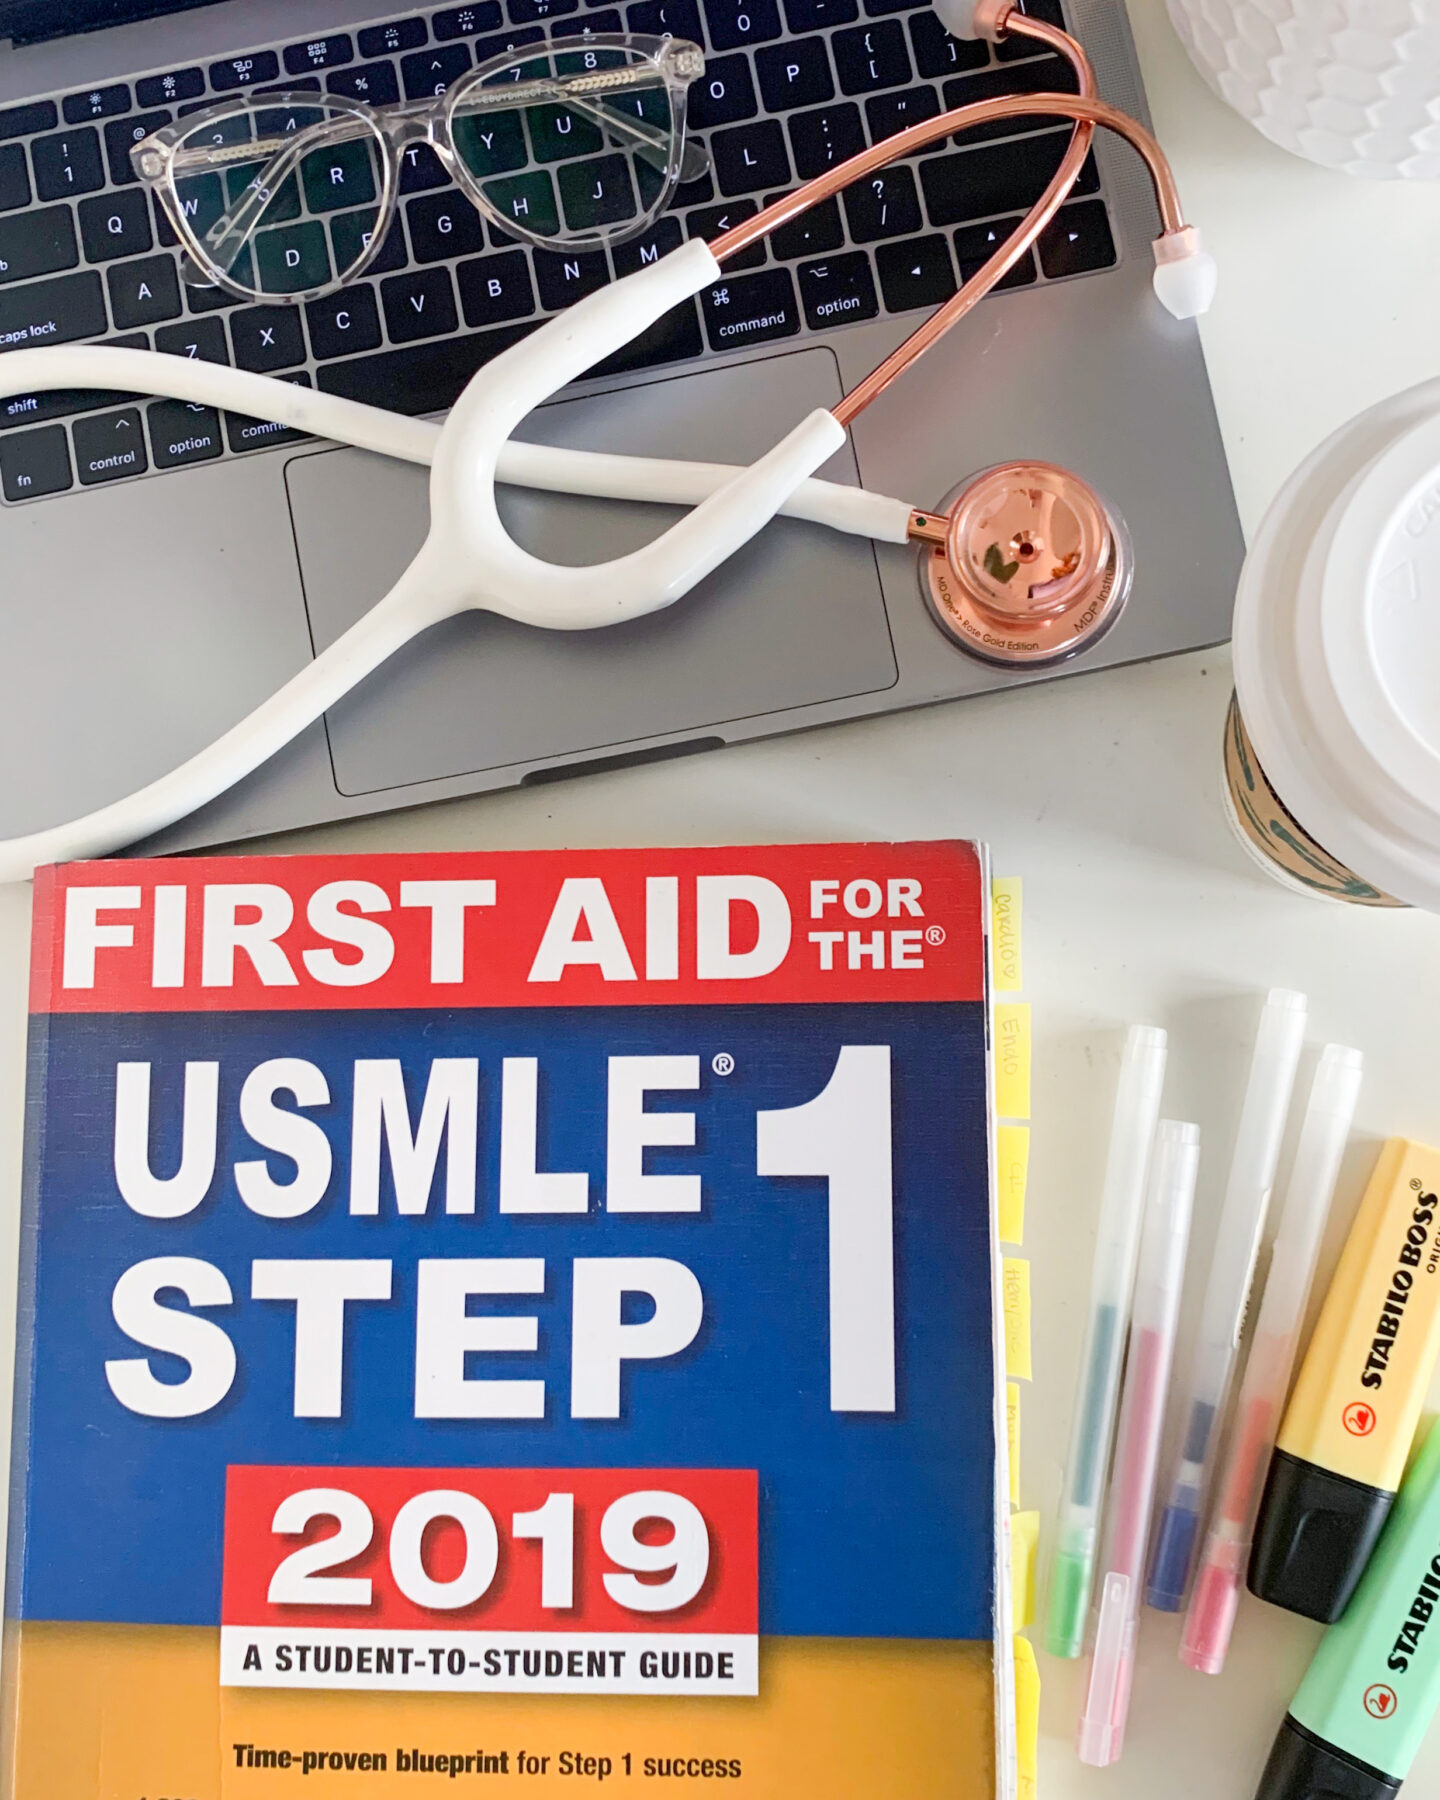 Best Way to Annotate USMLE Step 1 First Aid for Studying